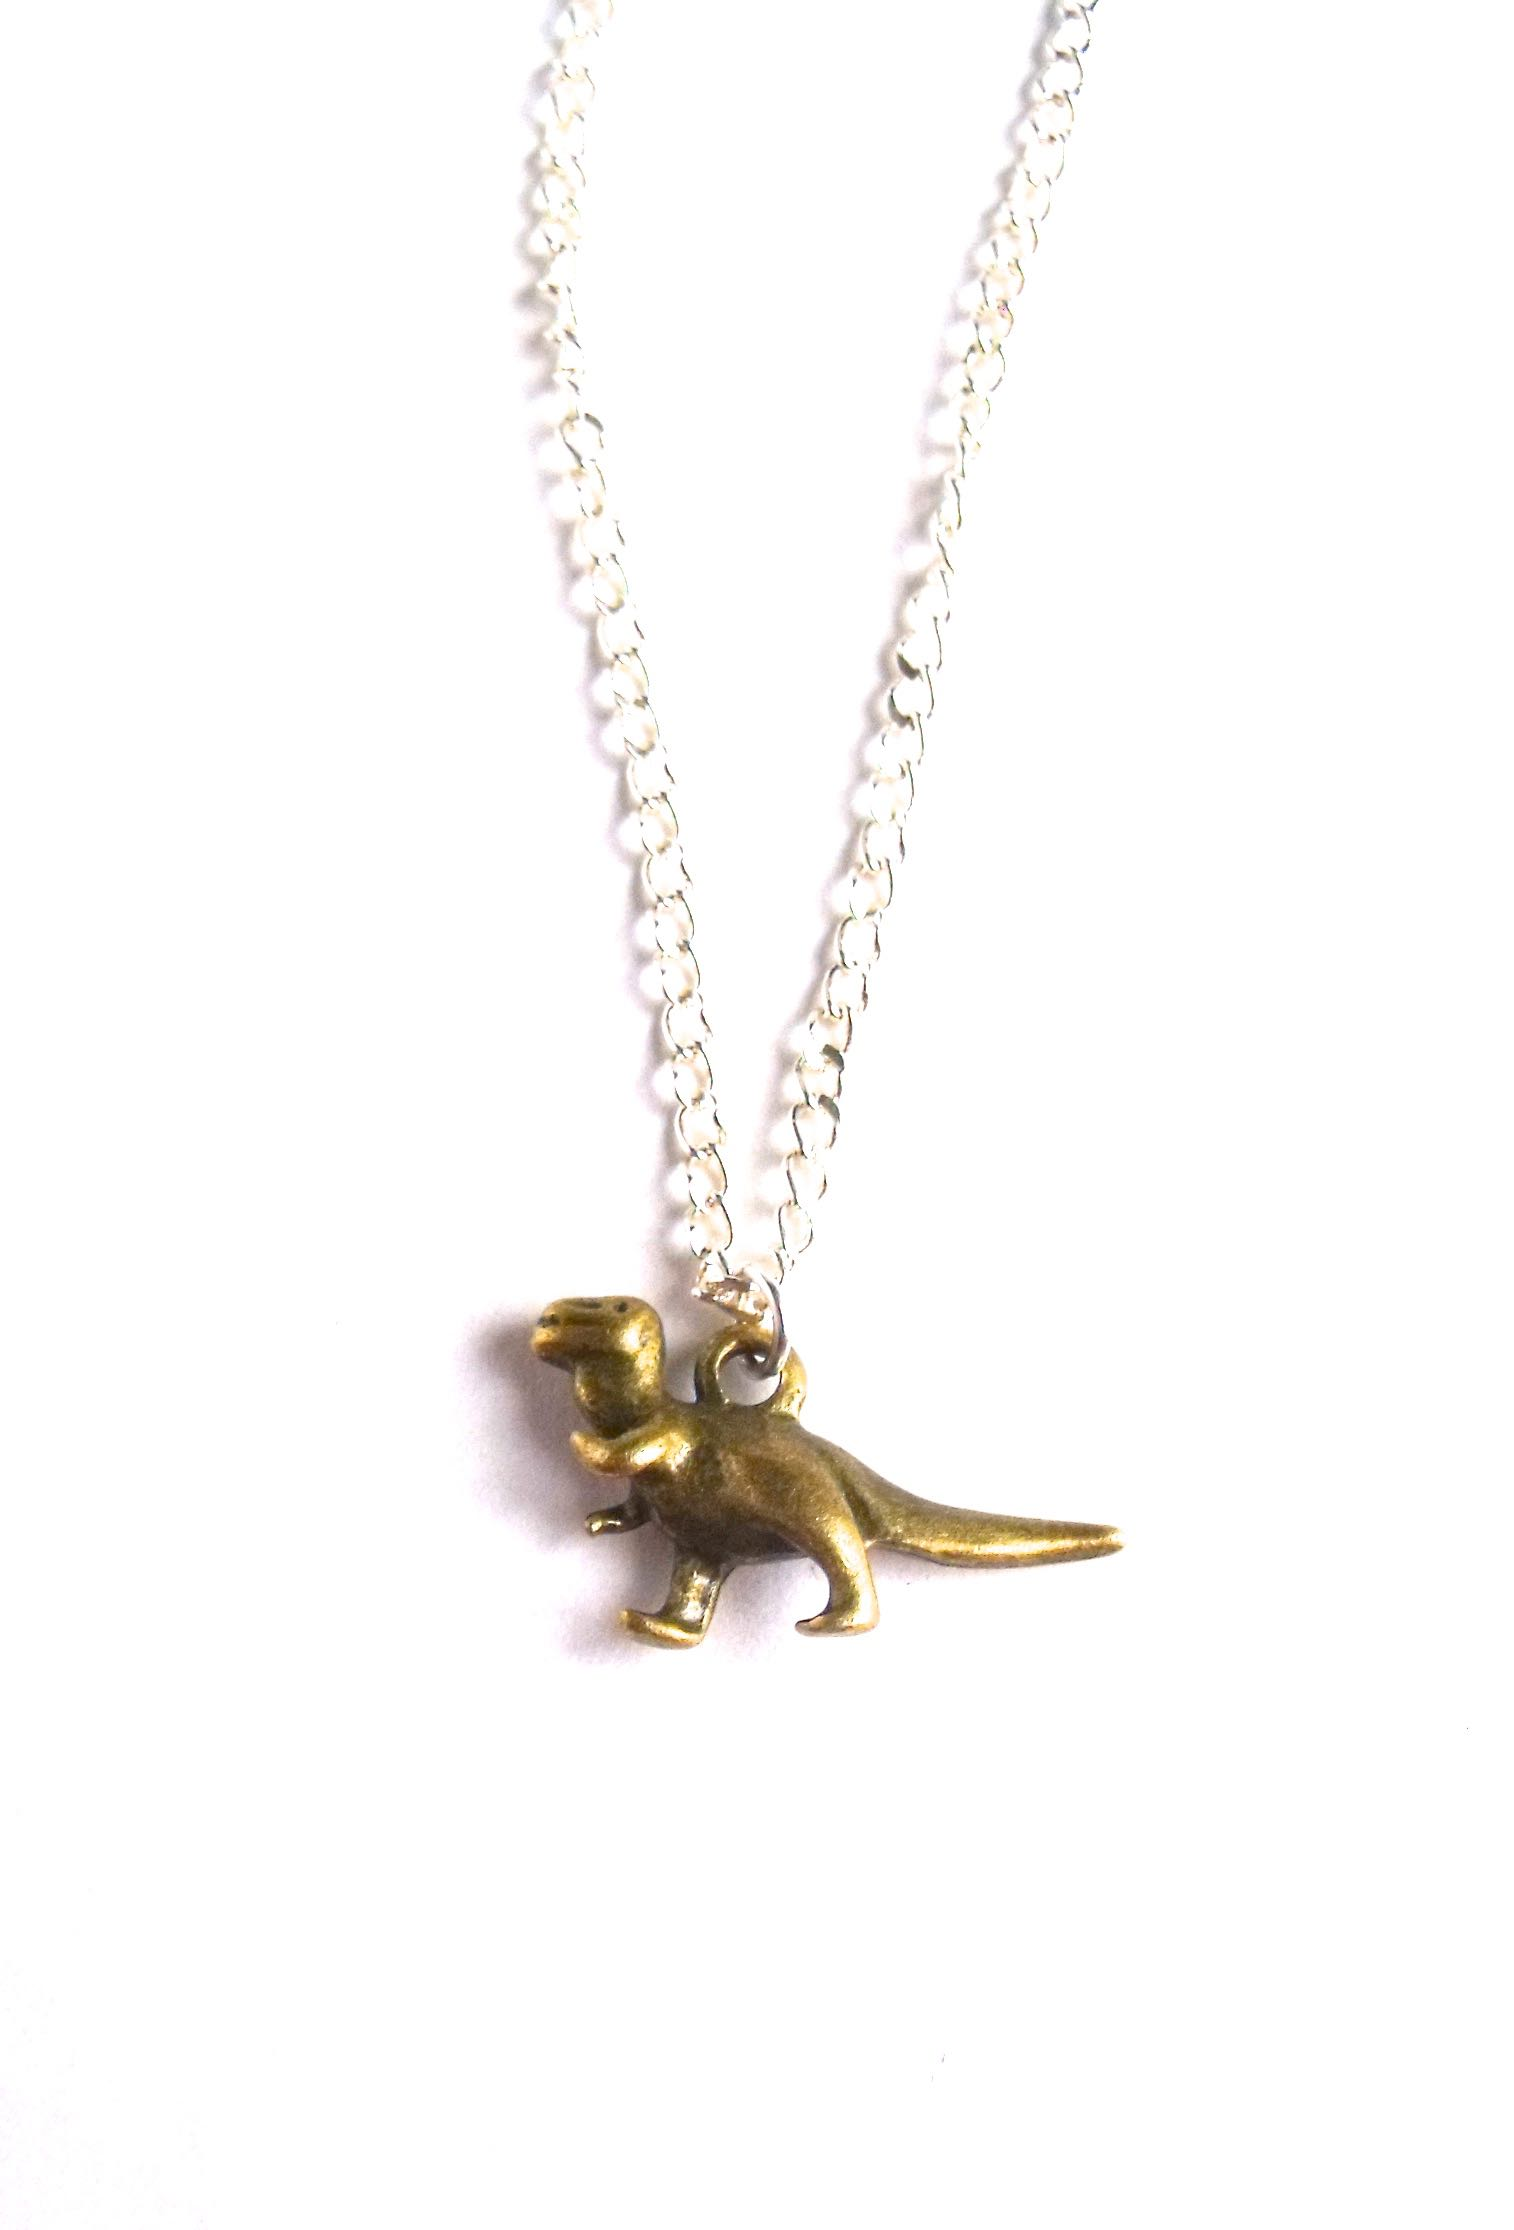 silver medium diplodocus jewellery pendant cartoondino sterling products dinosaur necklace